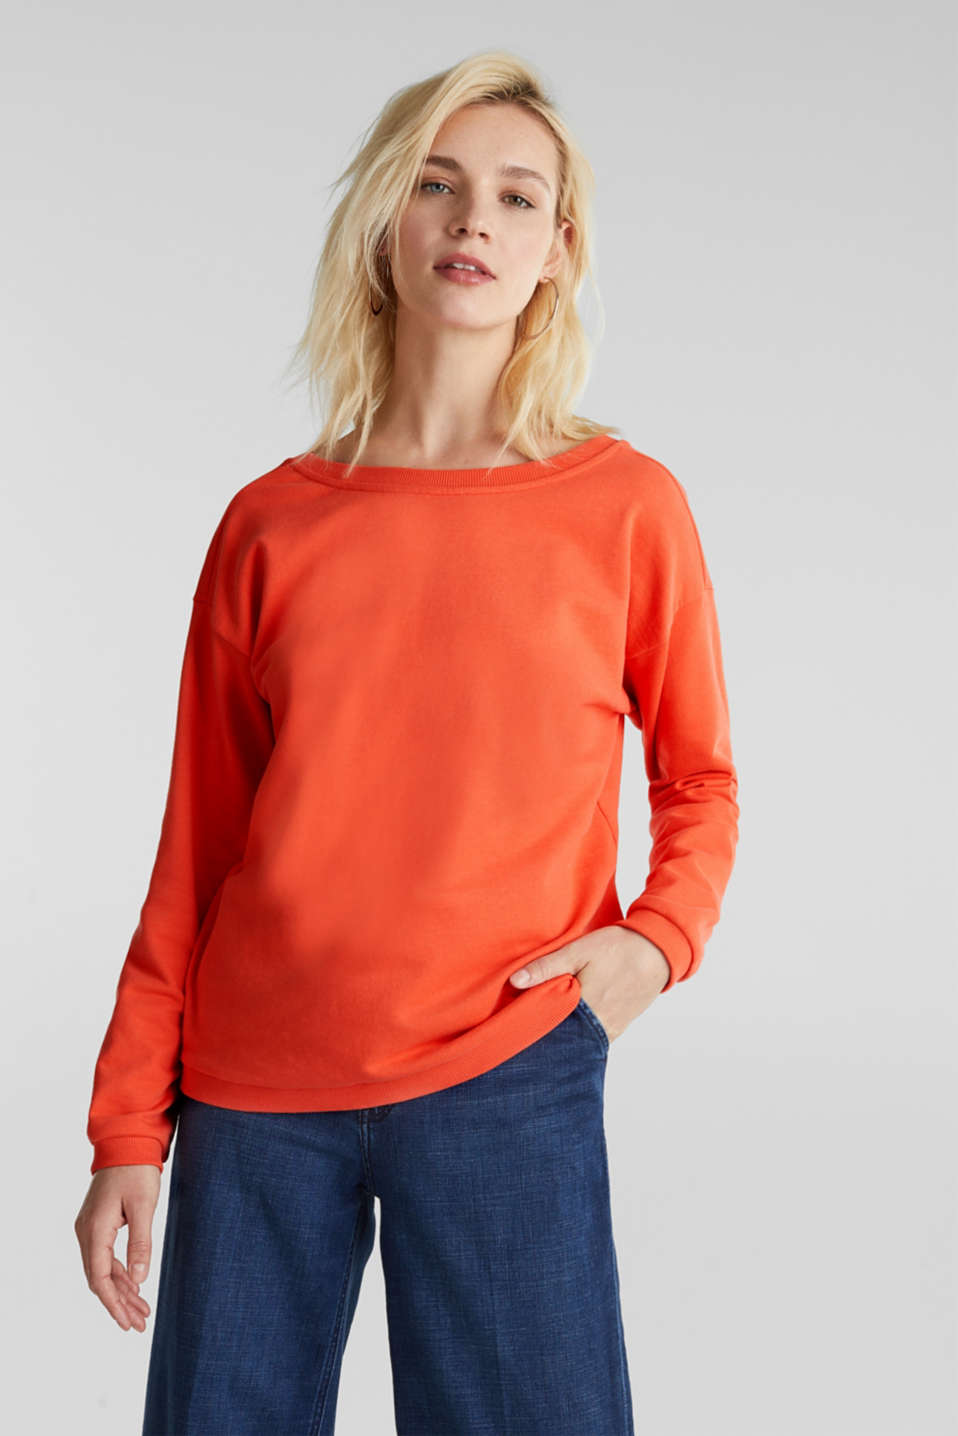 Sweatshirt with a back neckline, CORAL, detail image number 0